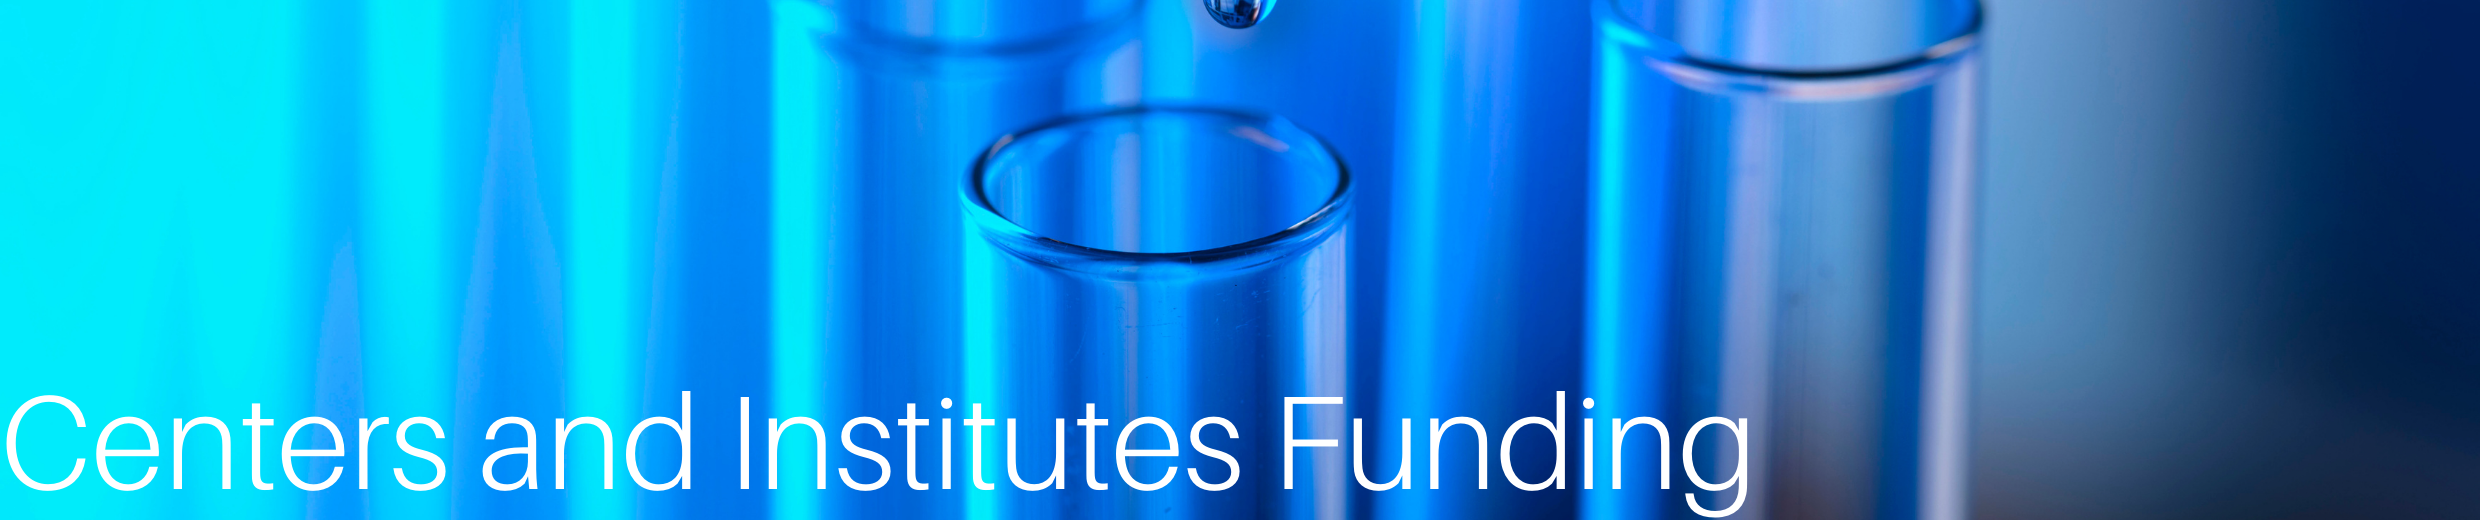 Centers and Institutes Funding